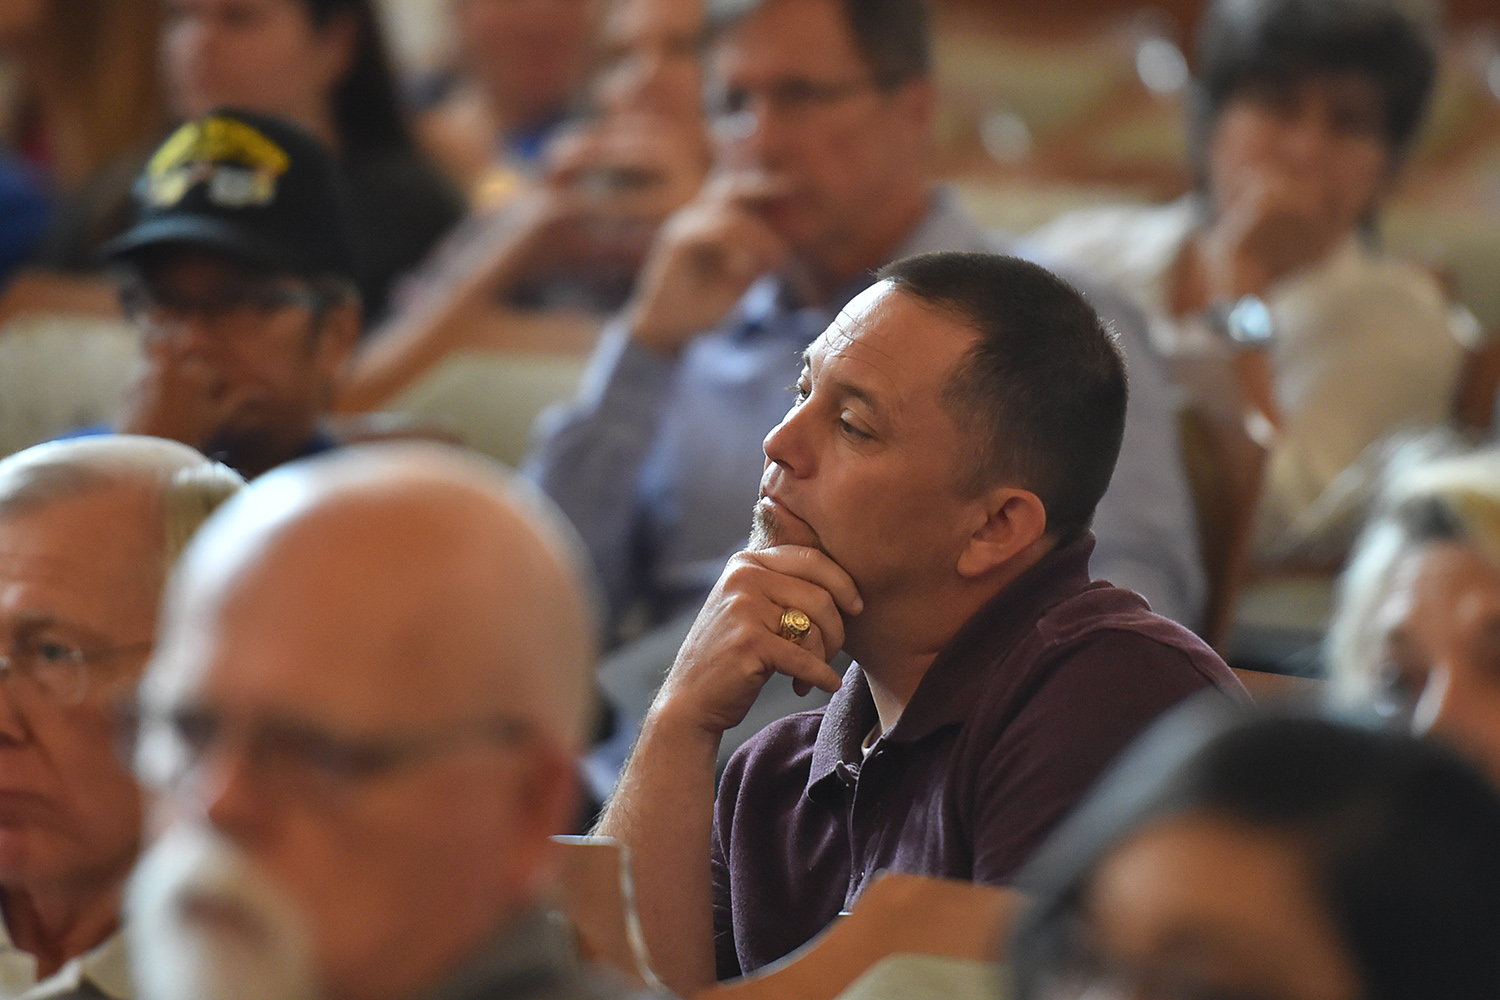 Local activist Mike Stewart listens during a Texas House Committee on Defense and Veterans' Affairs hearing on how annexation reform might affect nearby San Antonio military bases. The hearing was held in the San Antonio City Council chambers on June 19, 2017.